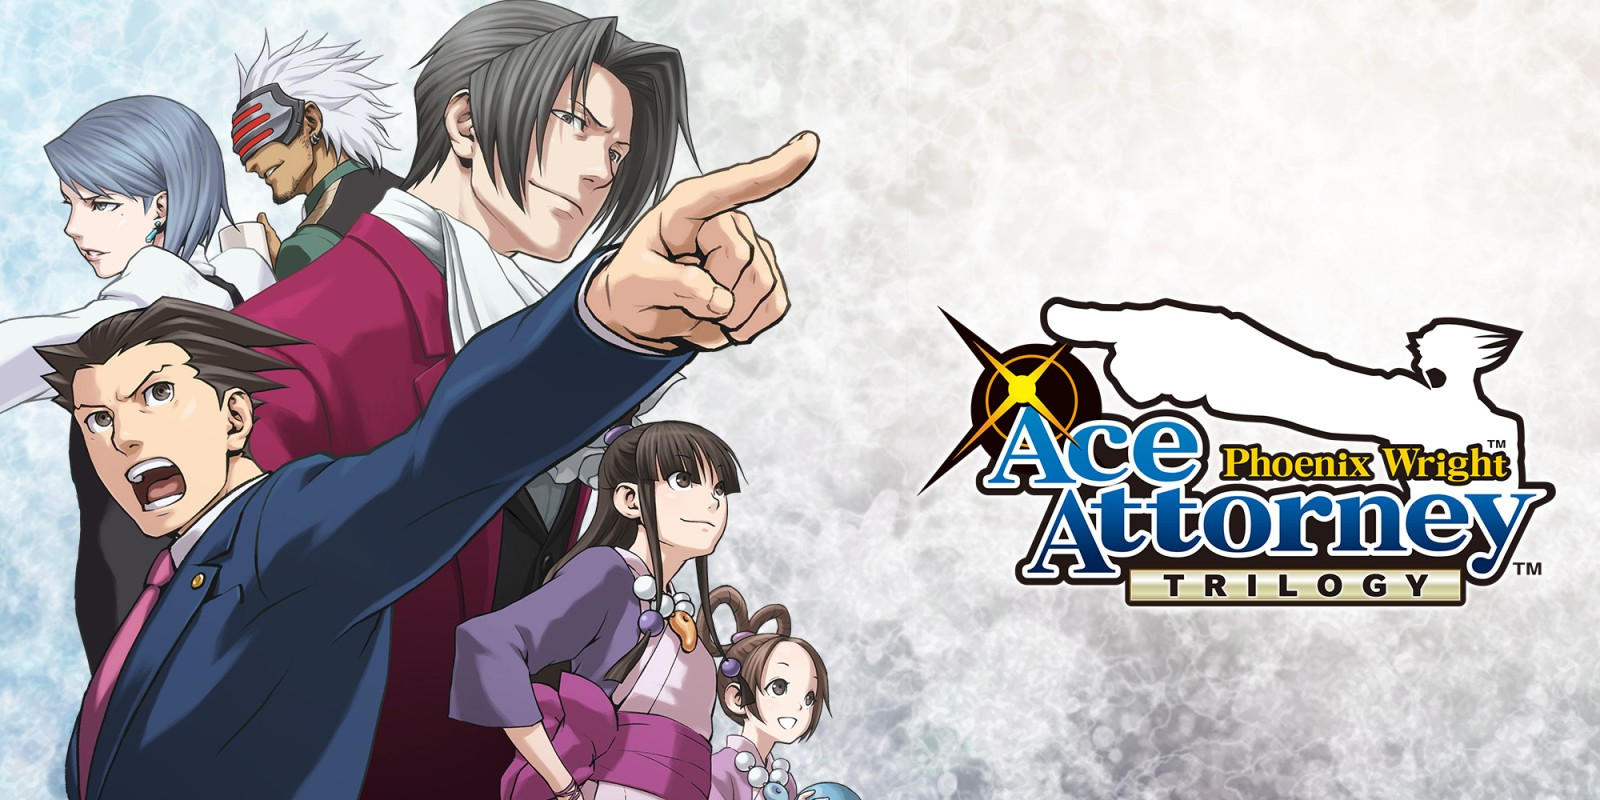 Phoenix Wright: Ace Attorney Trilogy ya disponible para PC y consolas